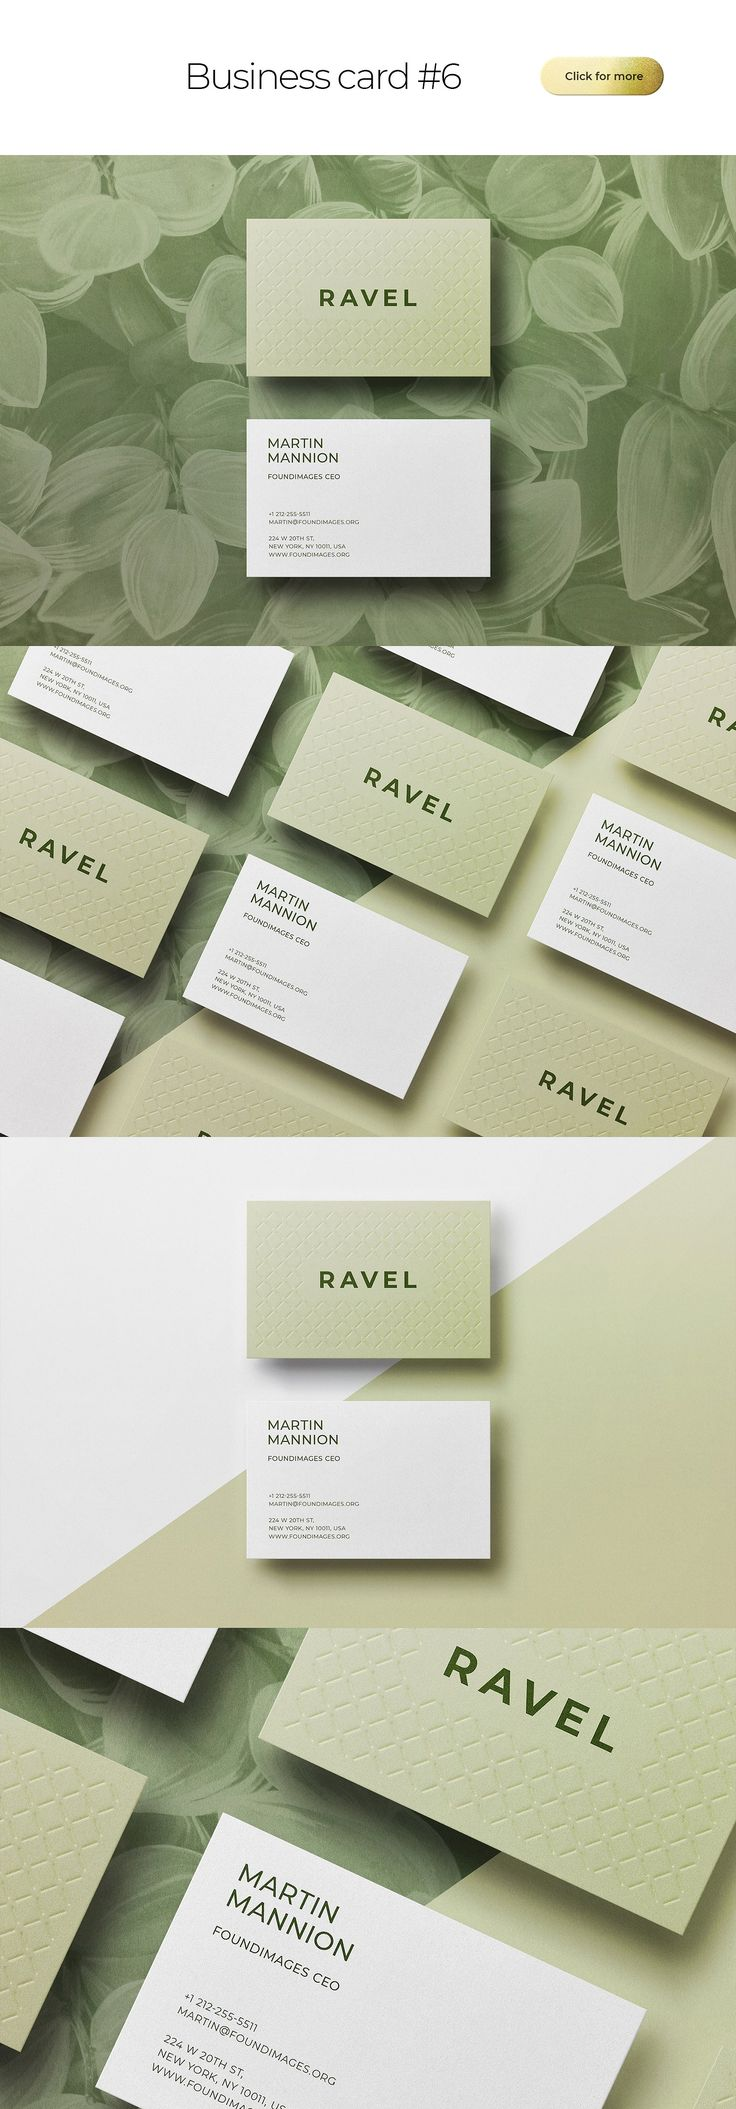 Business Card Bundle Template Mockup ~ Business Card Templates ~ Creative Market